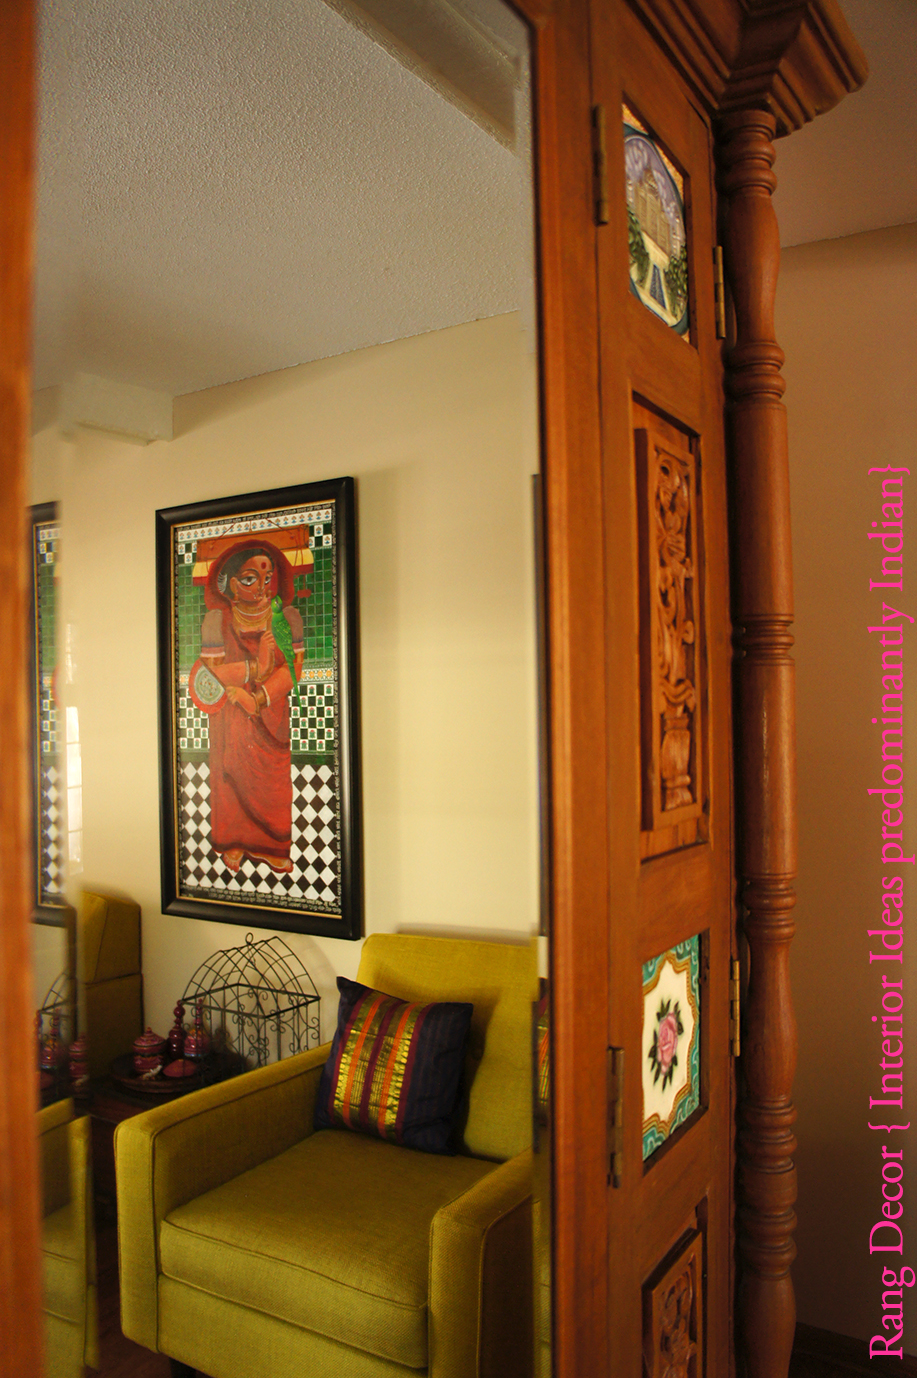 Indian Home Design: Rang-Decor {Interior Ideas Predominantly Indian}: She Came